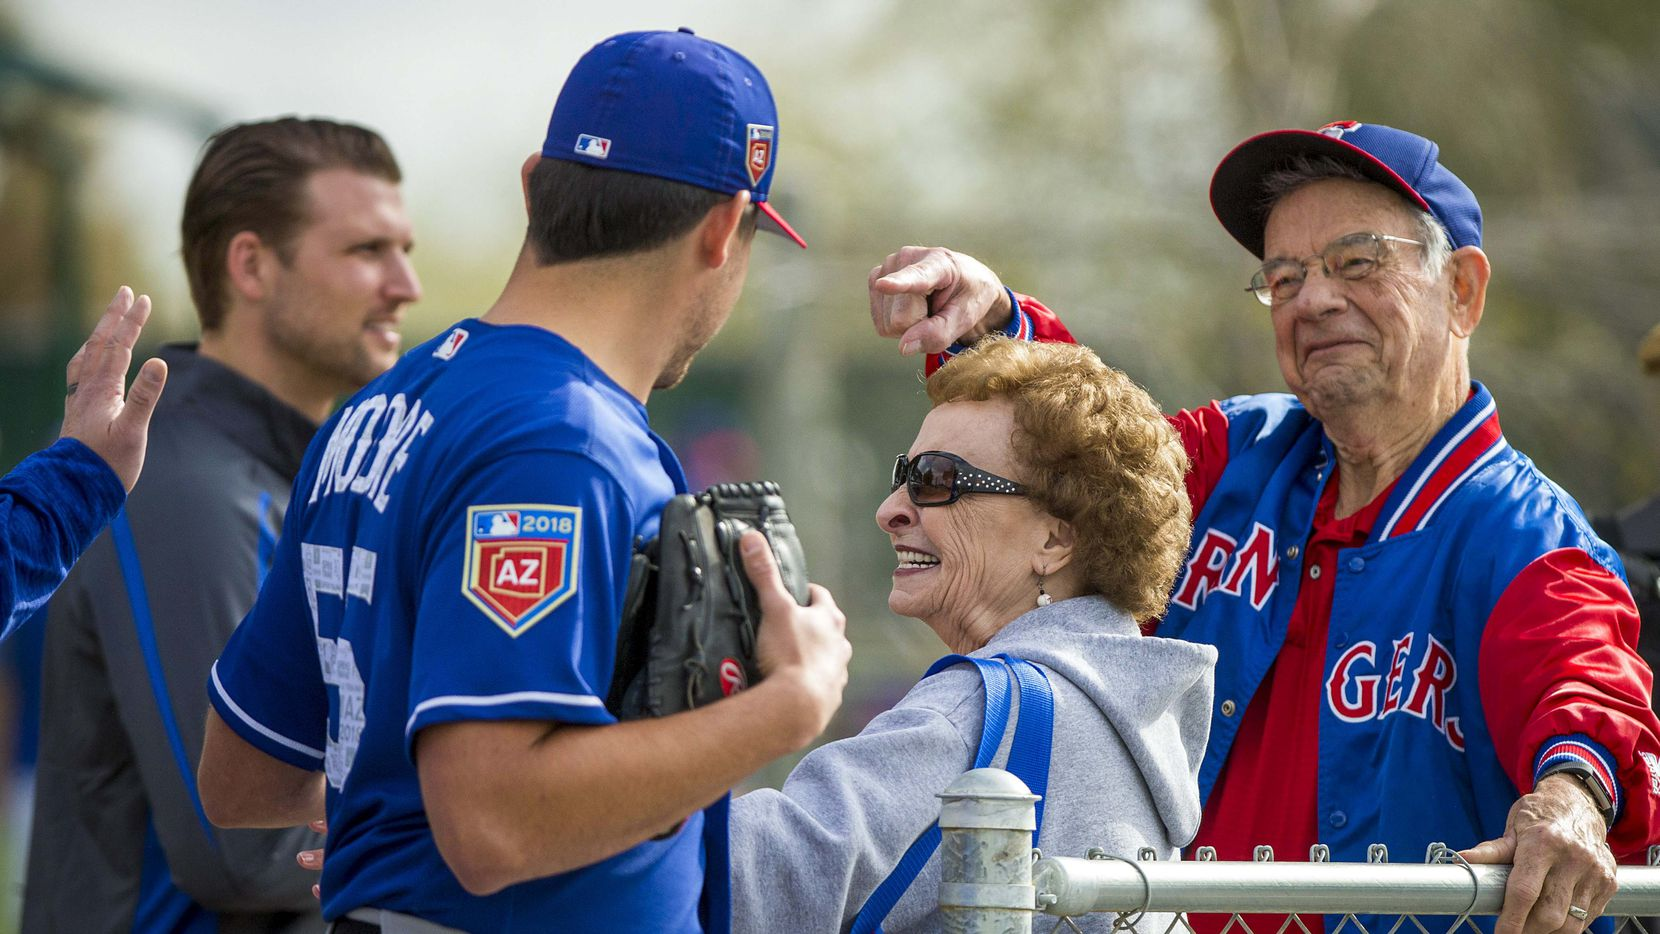 Fans Shirley Kost (center) and her husband Cal Kost (right) wave to Texas Rangers starting pitcher Matt Moore as he takes the field for the first spring training workout for pitchers and catchers at the team's training facility on Thursday, Feb. 15, 2018, in Surprise, Ariz.